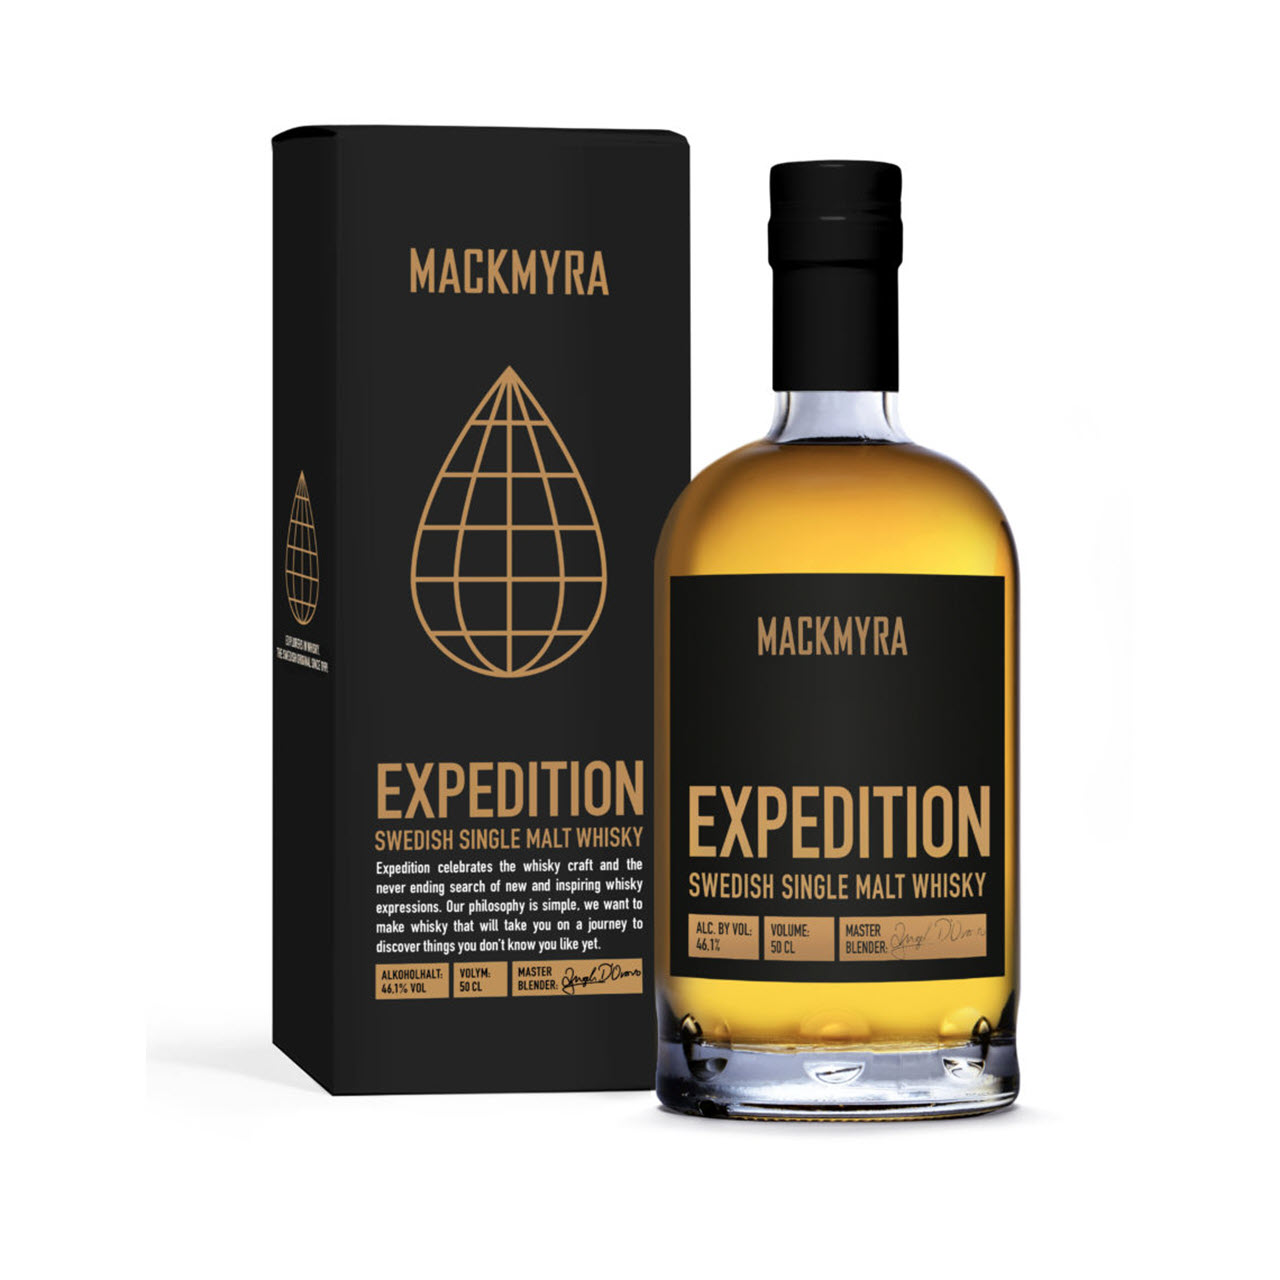 Nordic whisky #188 - Mackmyra Expedition